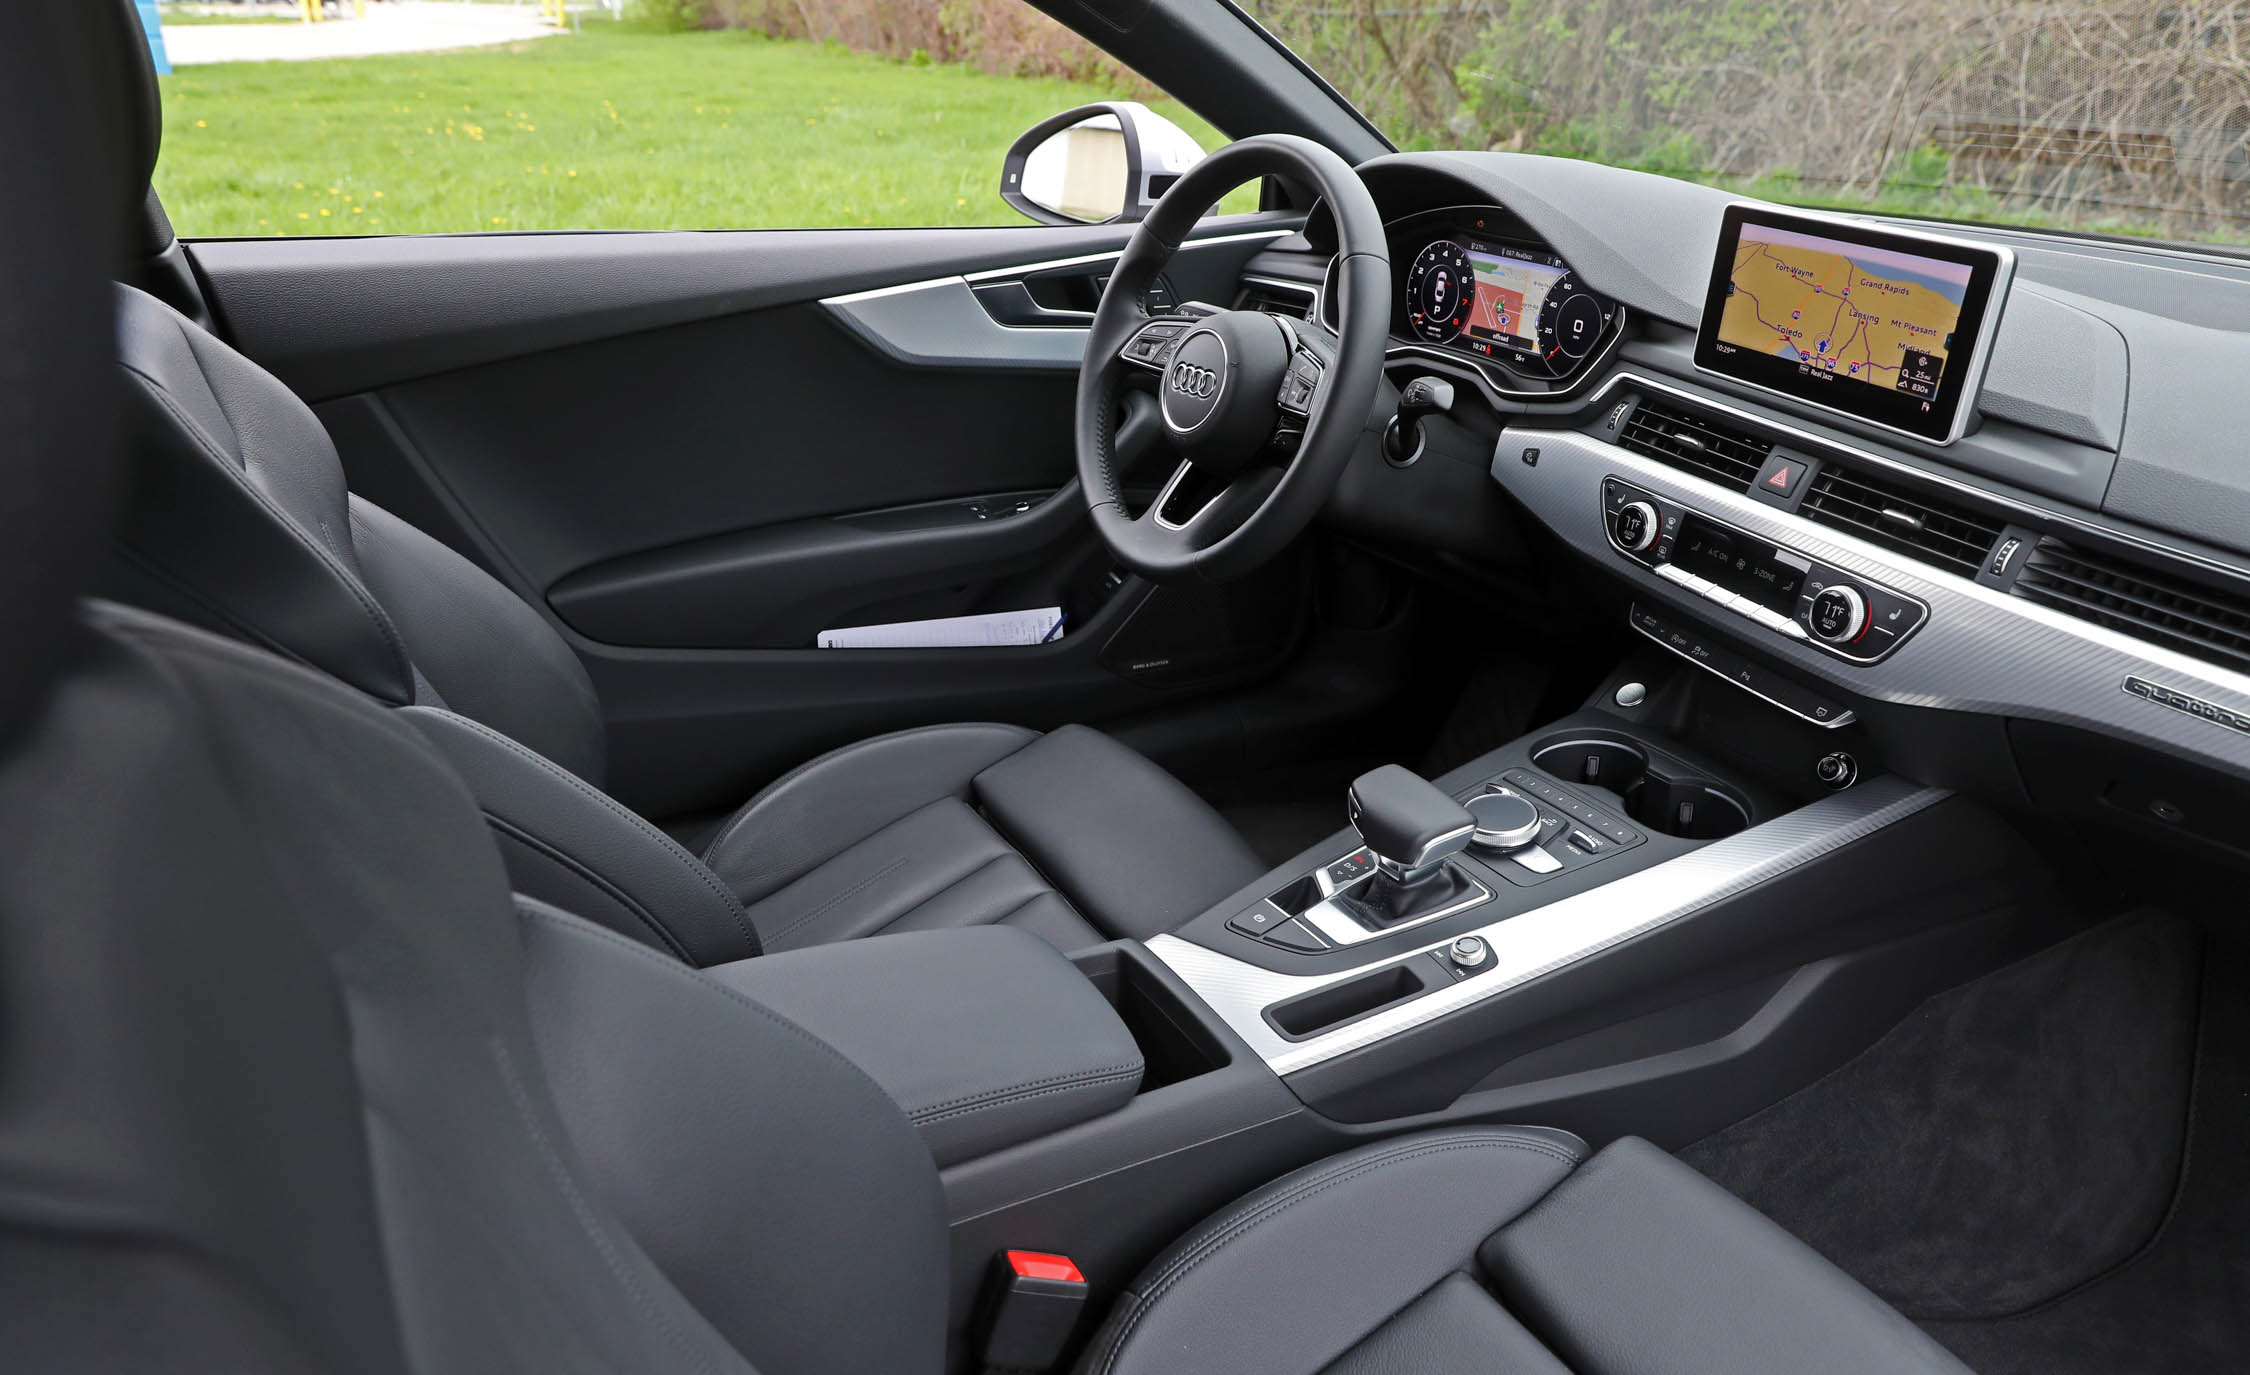 2018 Audi A5 Coupe Interior Driver Cockpit (Photo 16 of 50)